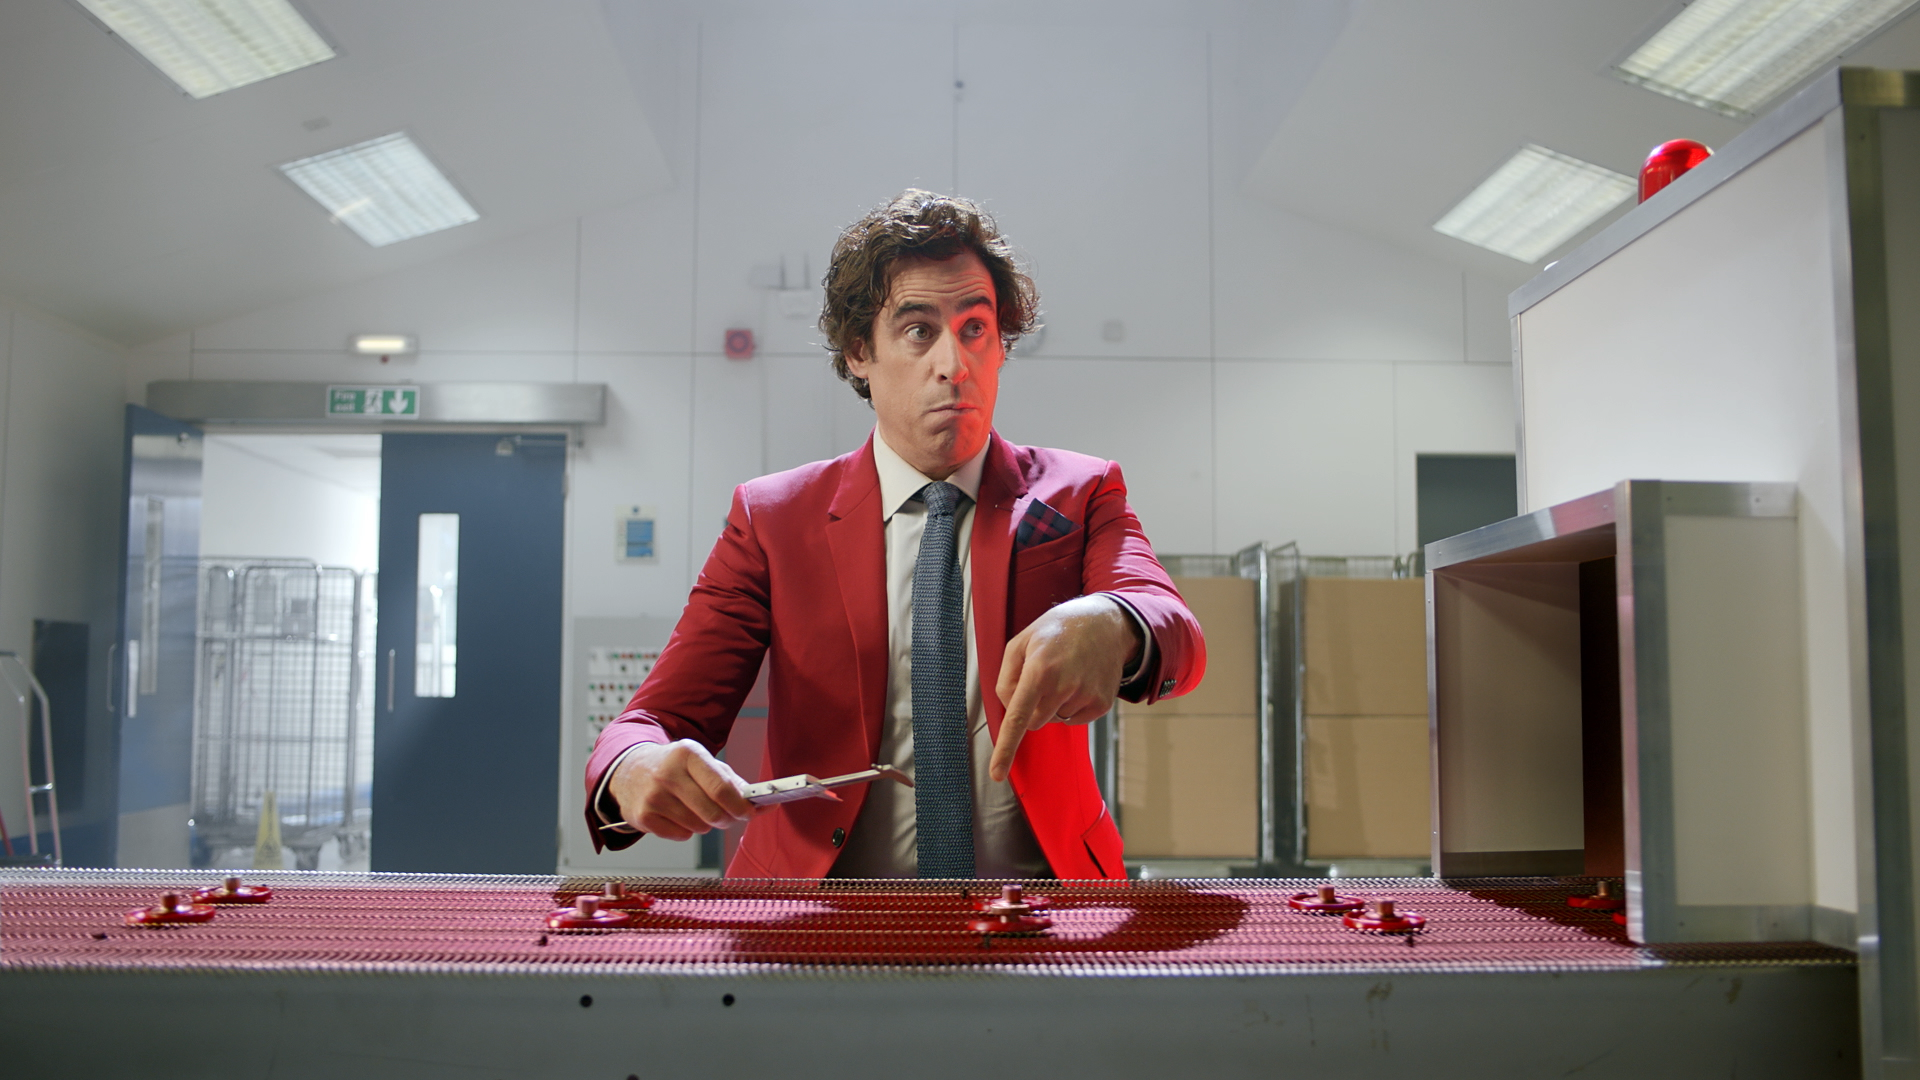 still of Stephen Mangan from Vodafone UK's 'Let's Talk IoT' campaign video